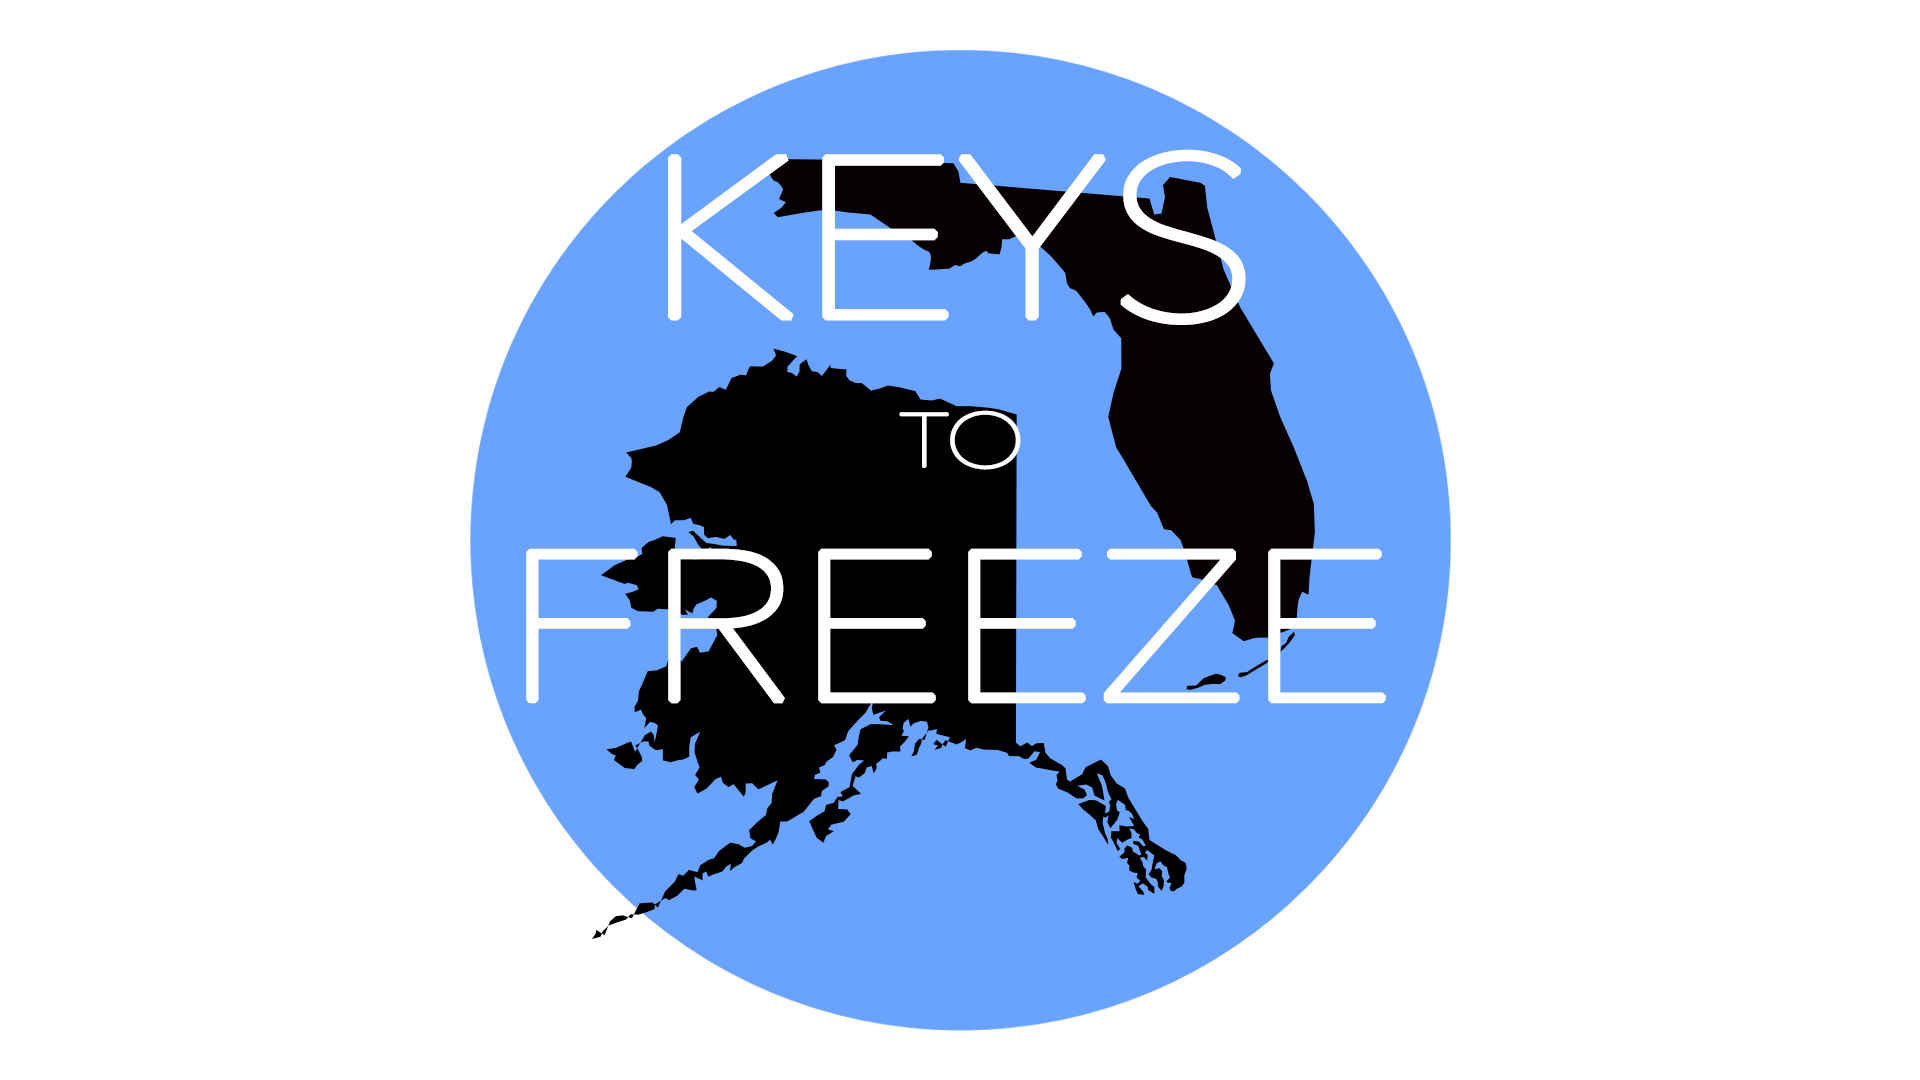 keys to freeze 3 (1)